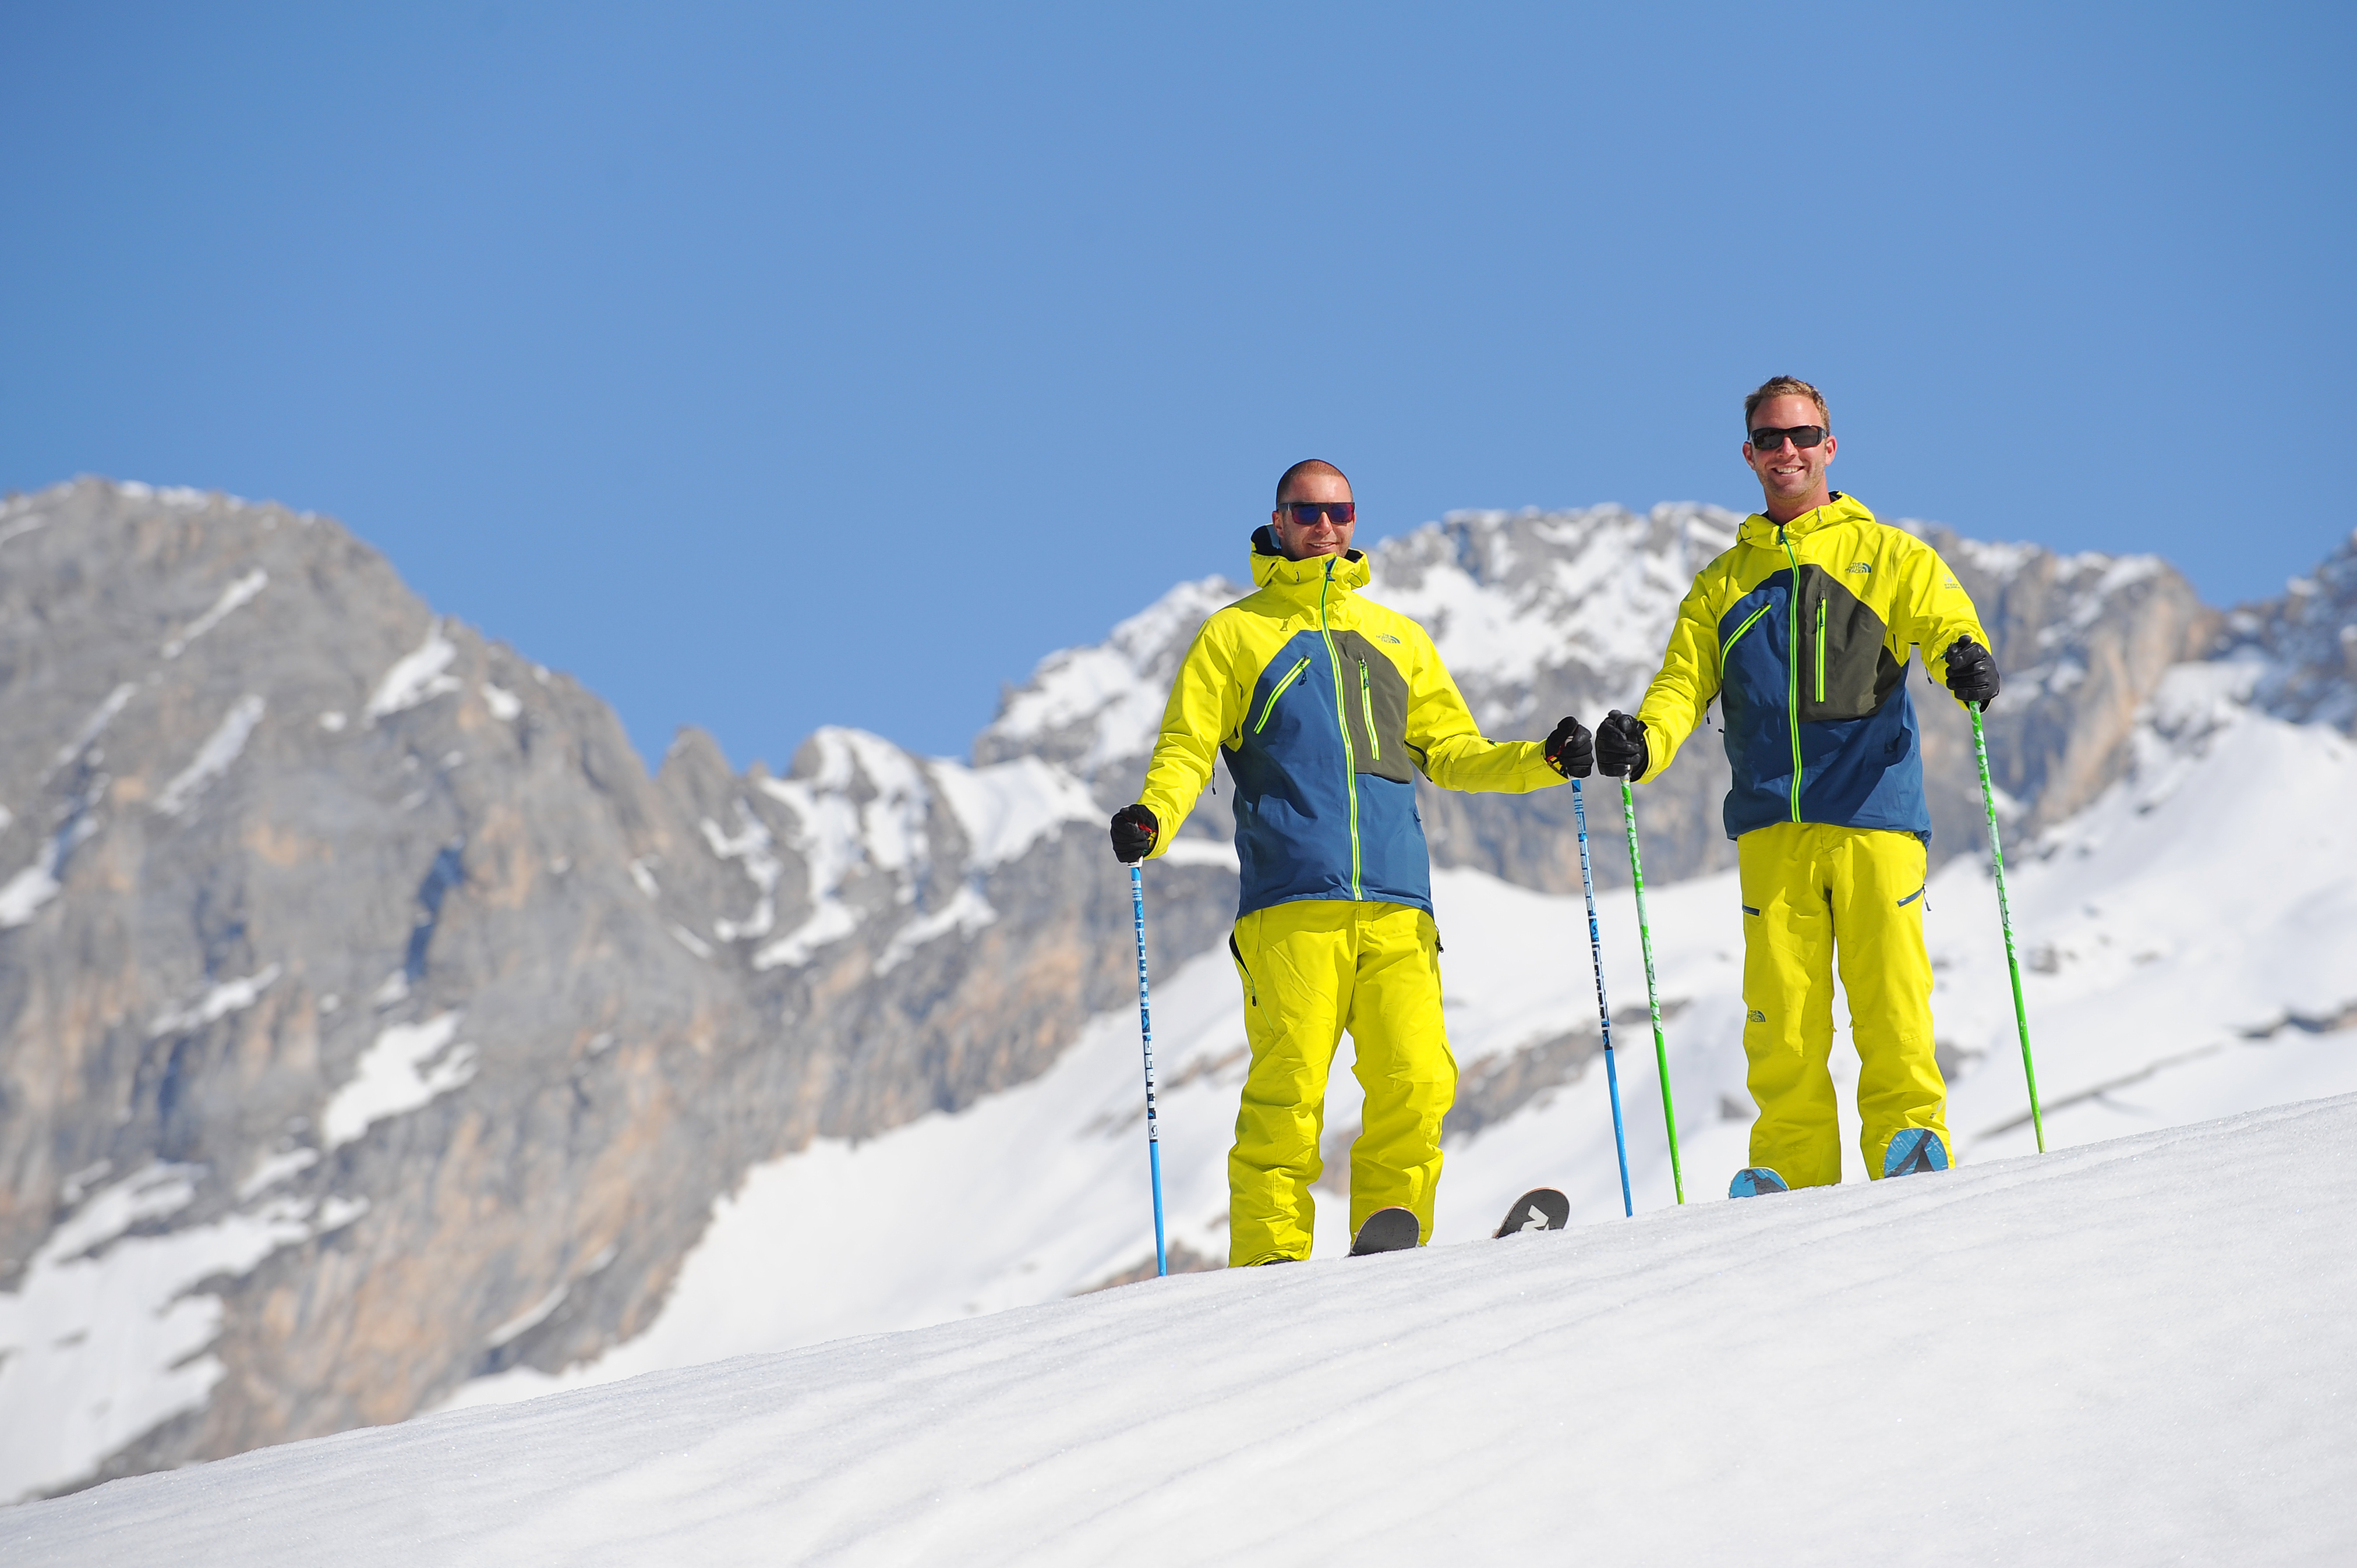 15.04.13 New Generation, Courchevel PIC © Andrew Lloyd